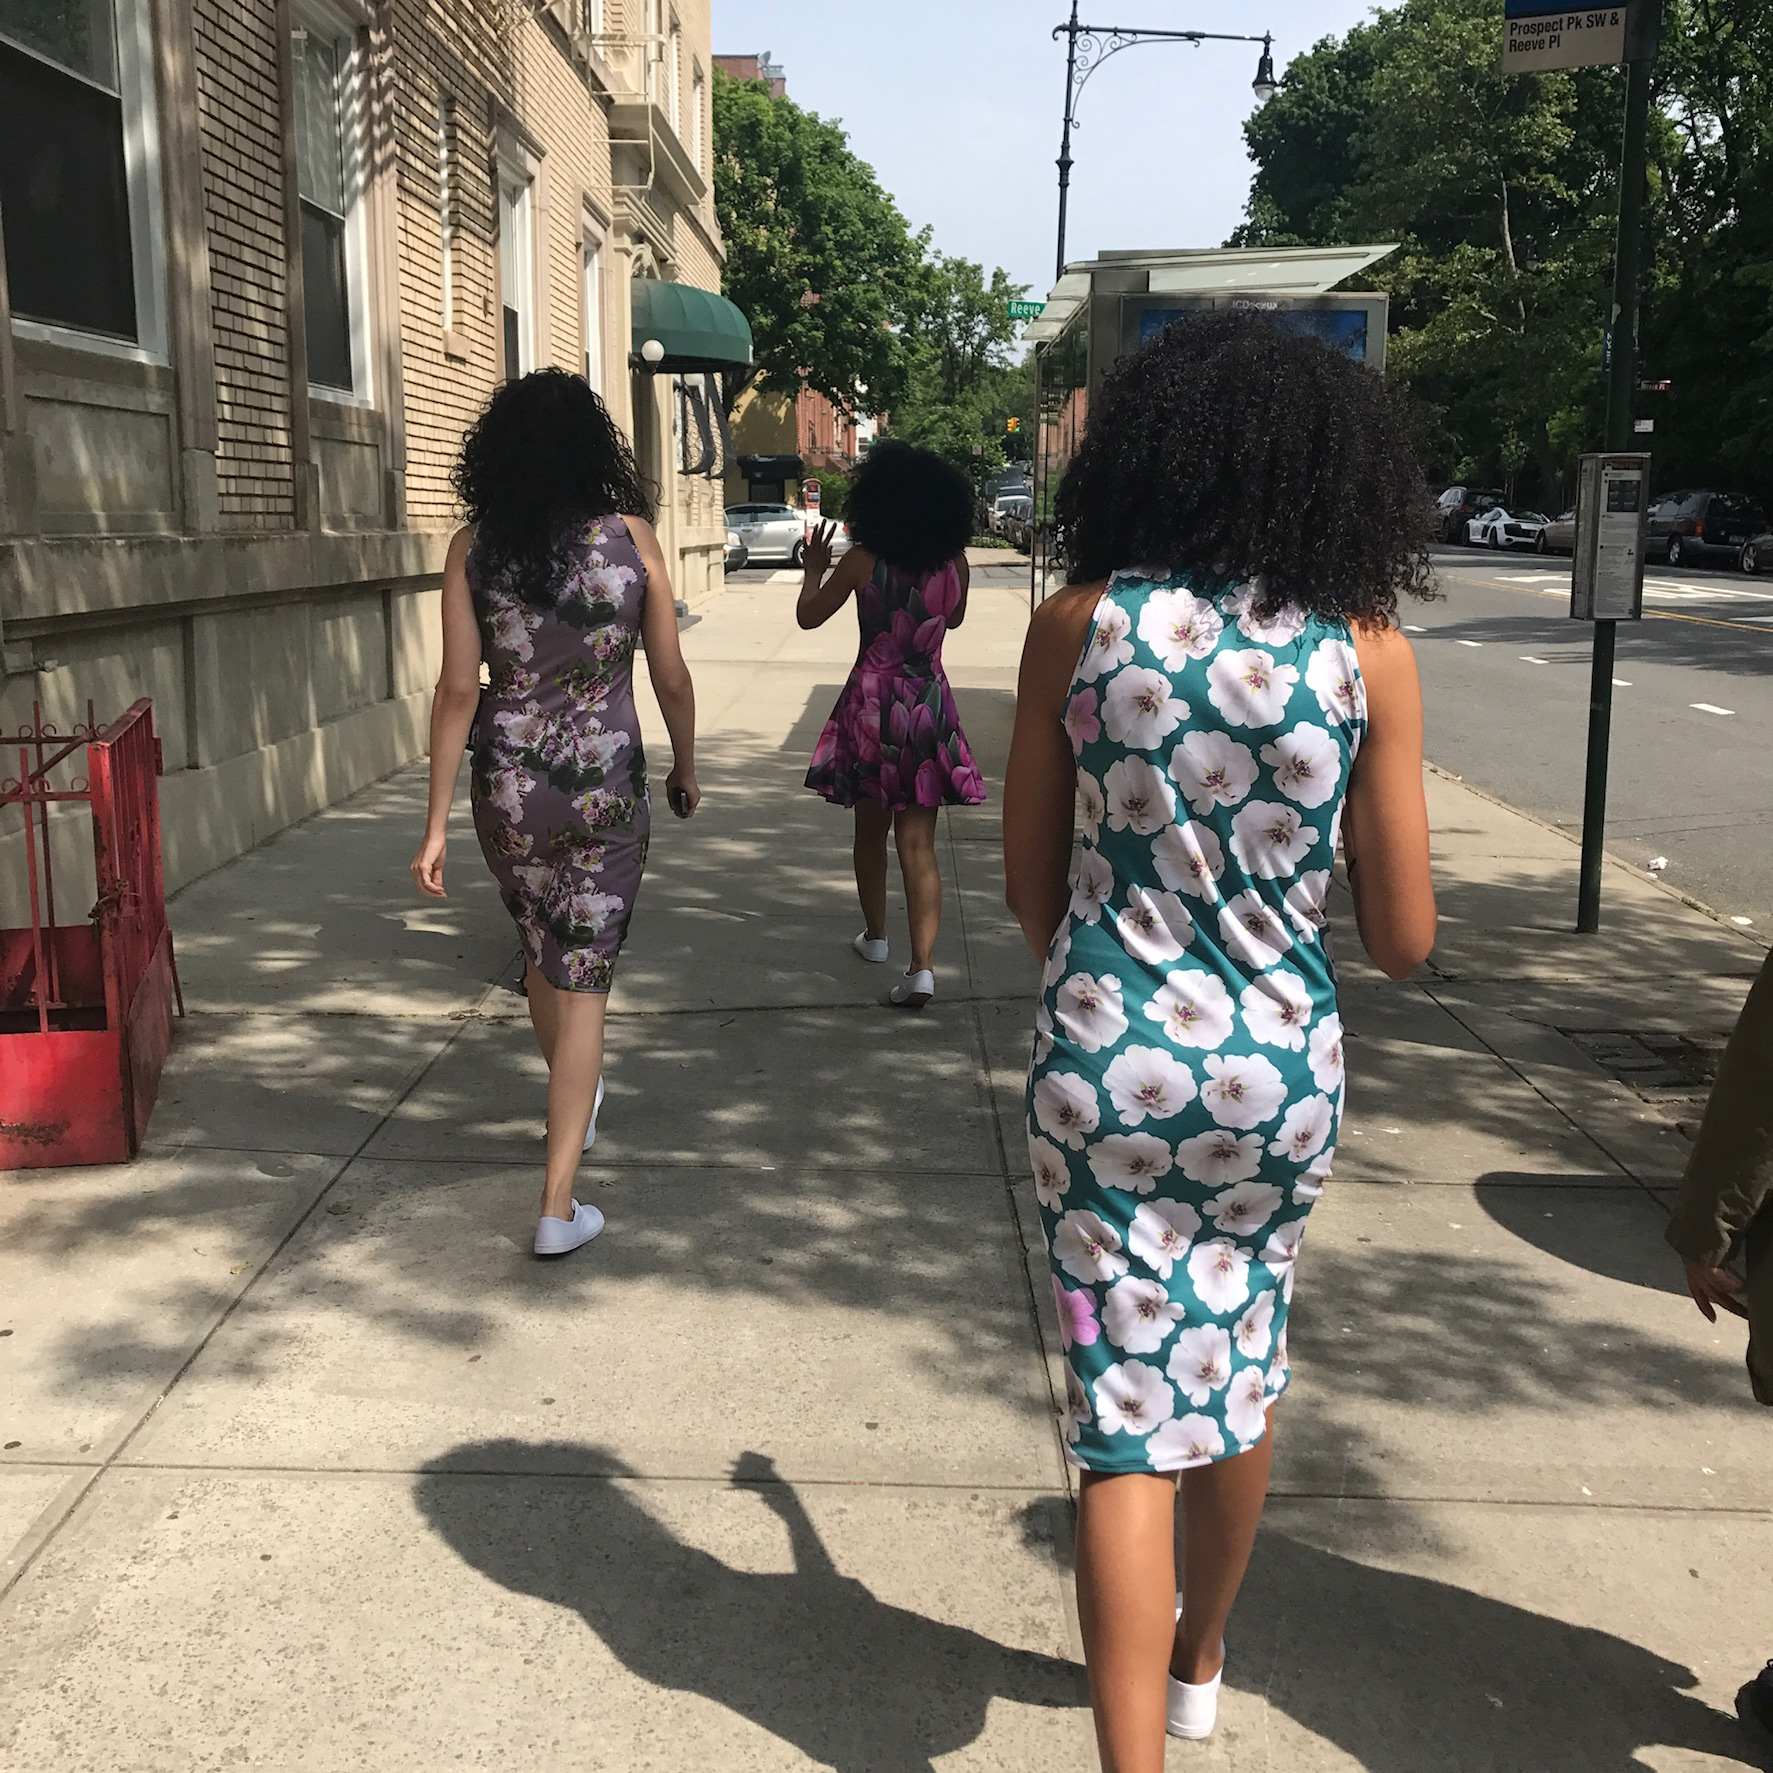 Kær's 2017 summer dresses lighting up the sidewalk. How can these prints not make you happy?